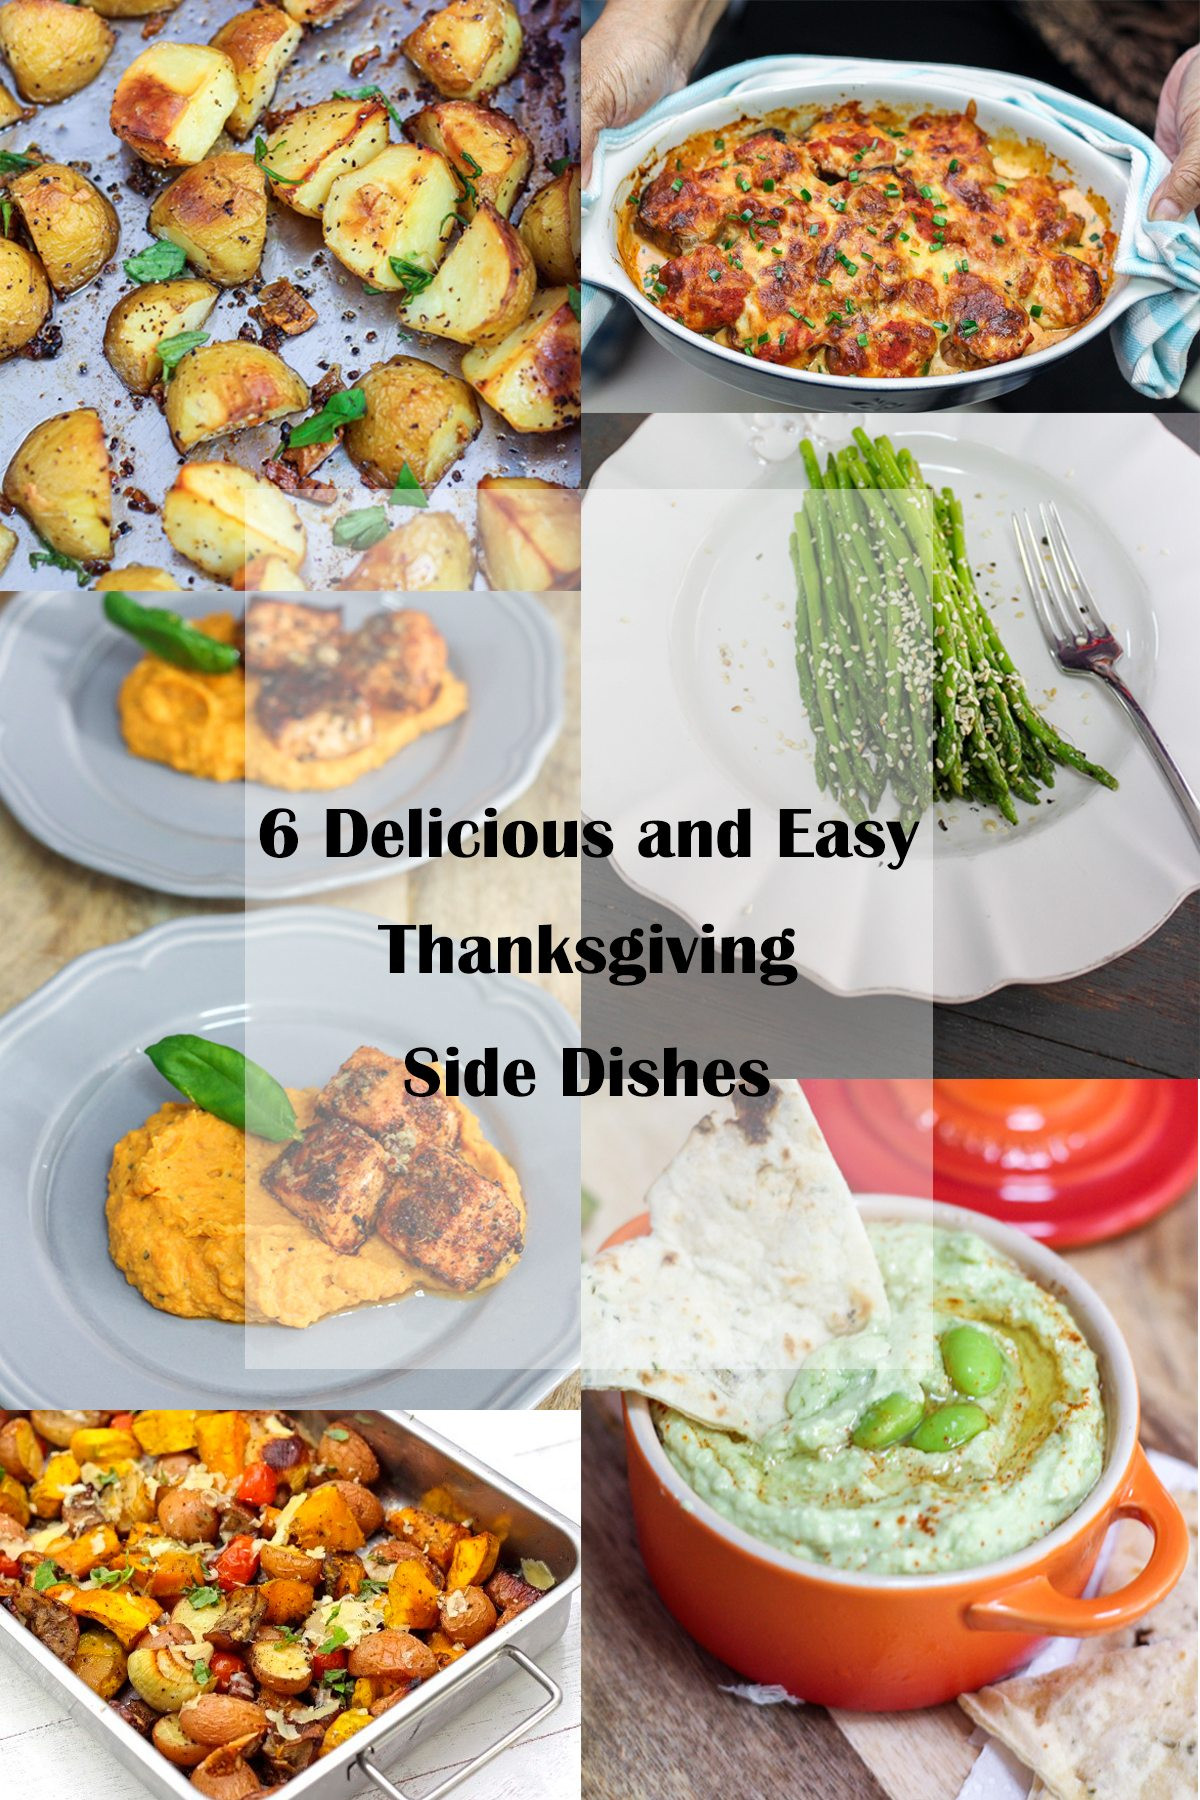 Most Popular Thanksgiving Side Dishes  6 Delicious and Easy Thanksgiving Side Dishes